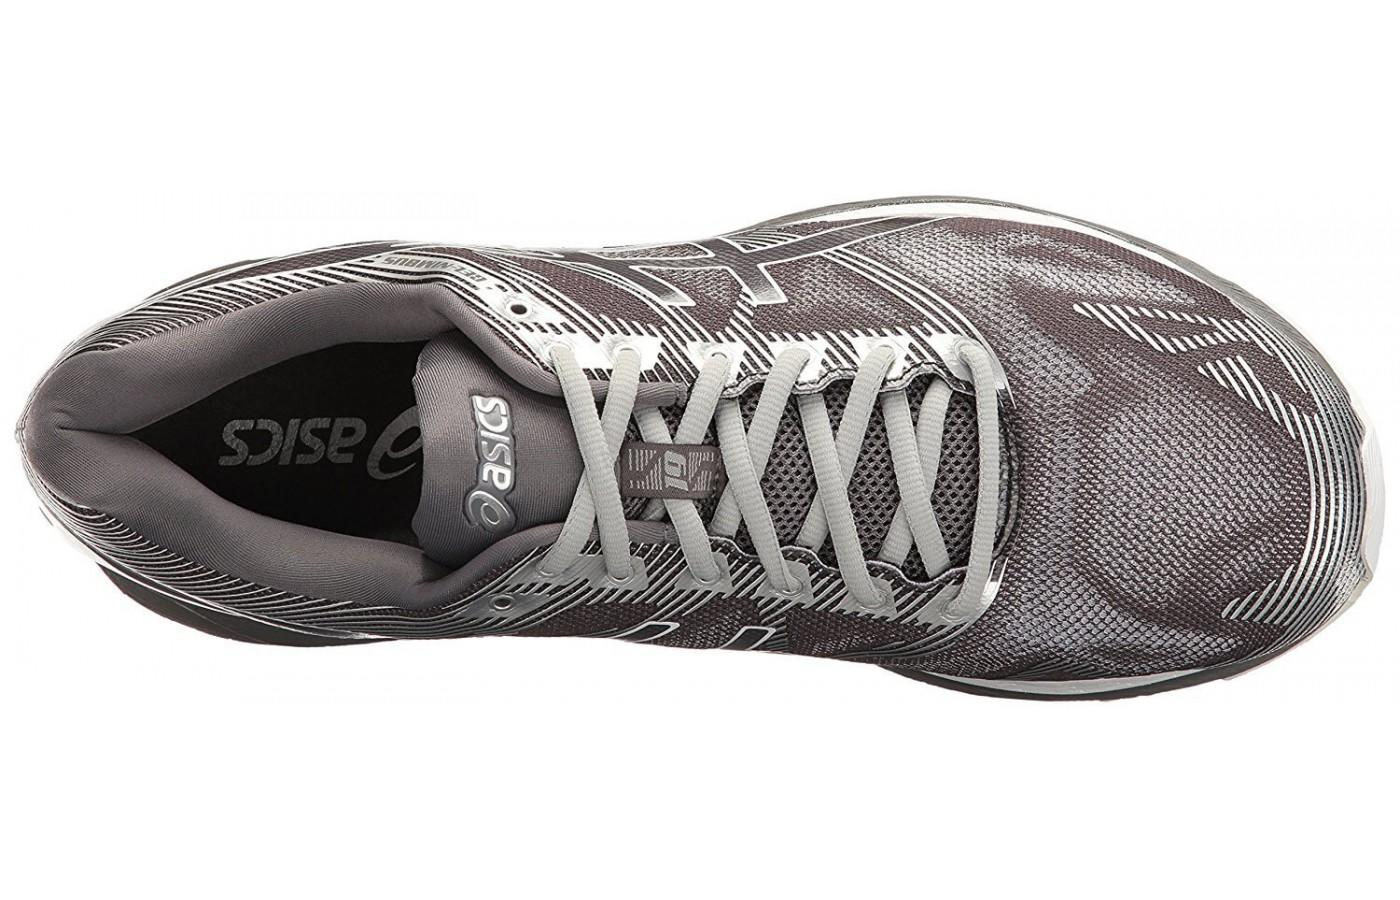 The updated upper of the ASICS Gel Nimbus 19 gives runners a glove-like fit.